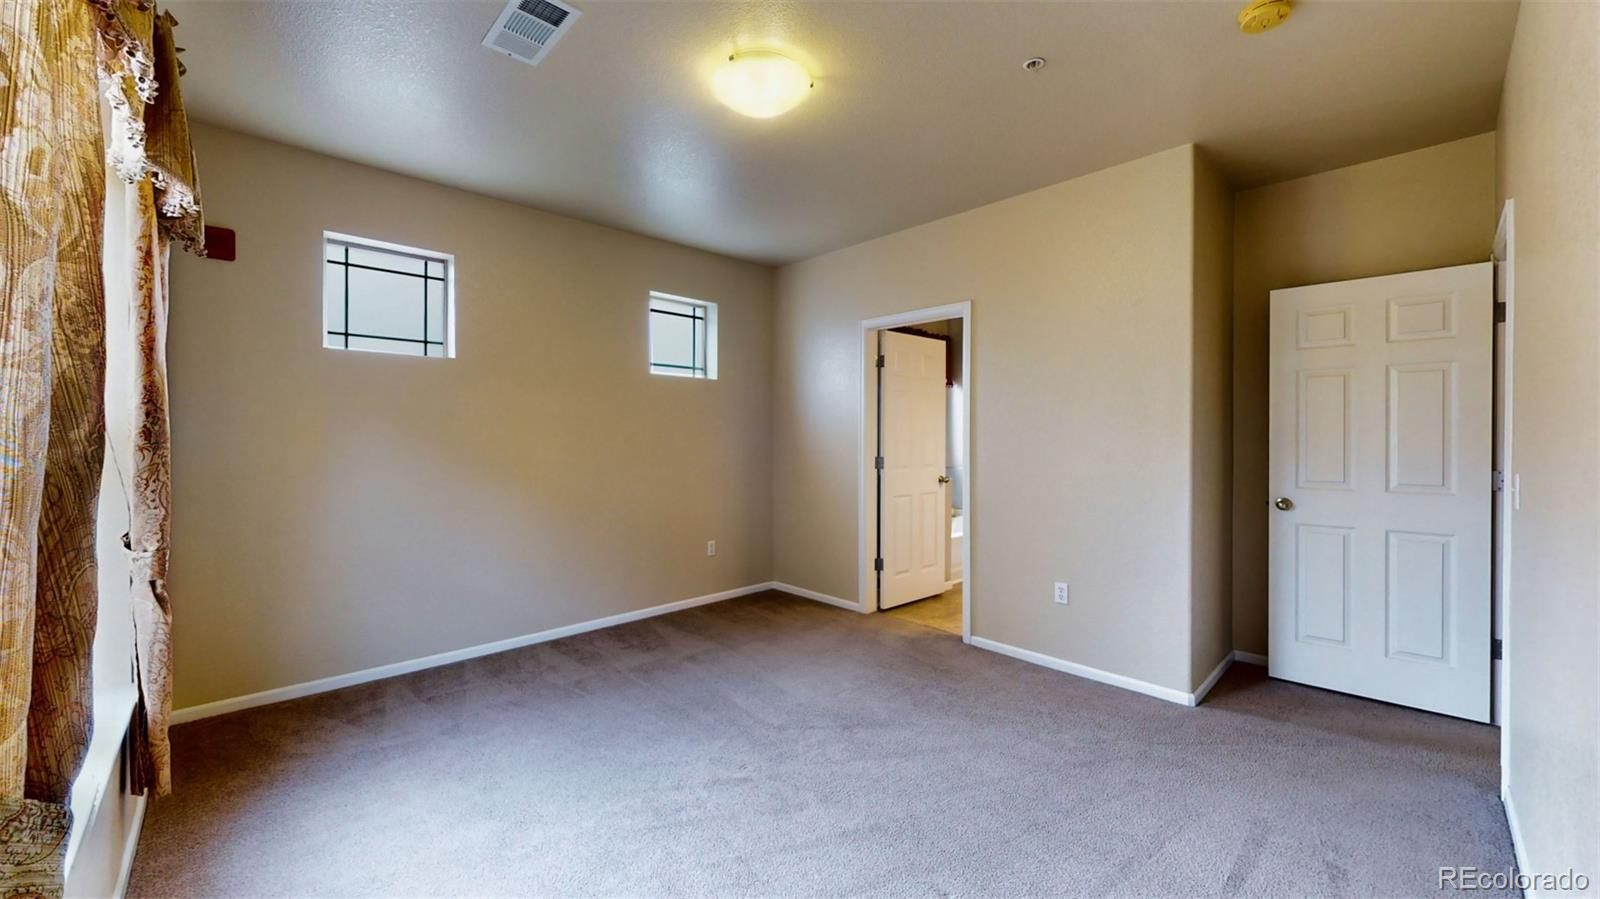 MLS# 3562922 - 10 - 8123 W 51st Place #202, Arvada, CO 80002